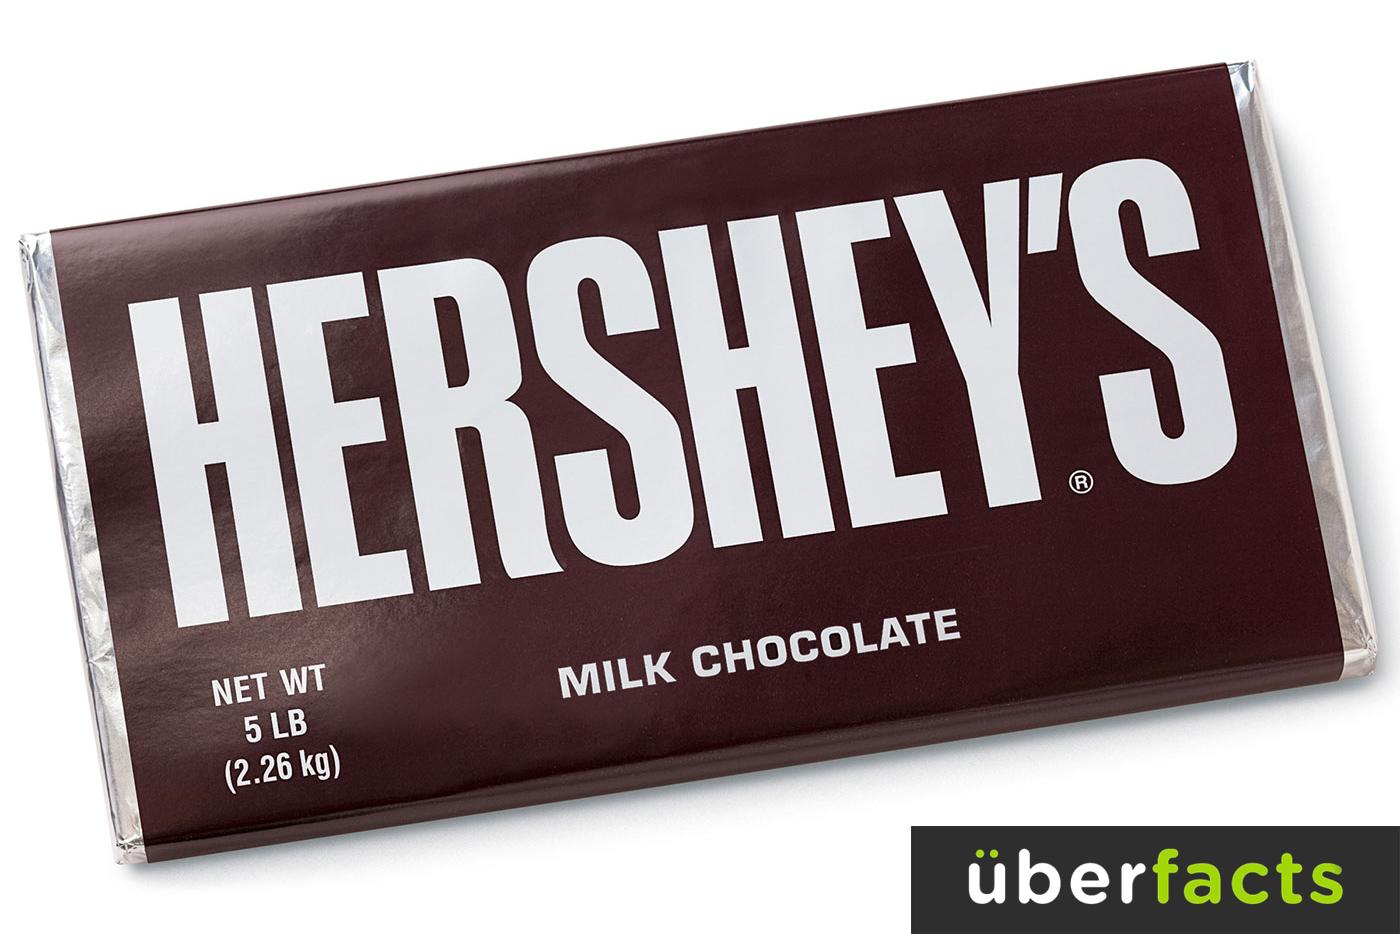 RT @UberFacts: Today is National Milk Chocolate Day! http://t.co/ndint1DLd2